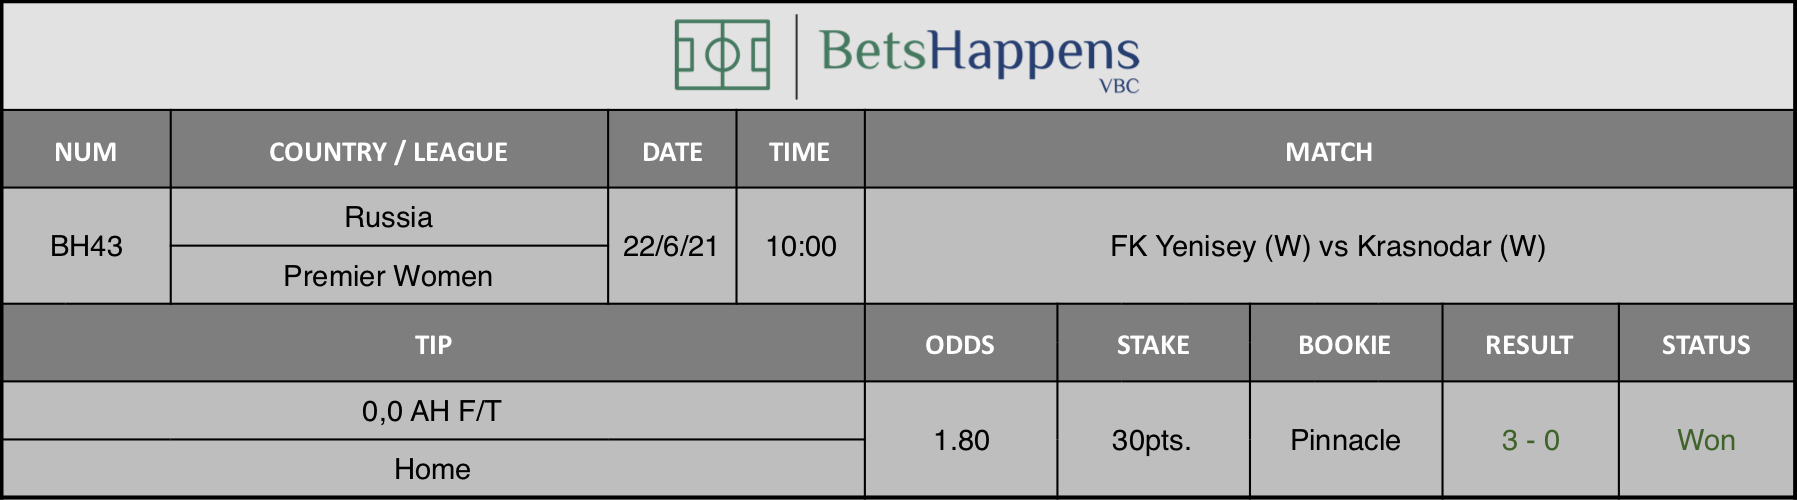 Results of our tip for the FK Yenisey (W) vs Krasnodar (W) match 0,0 AH F/T Home is recommended.